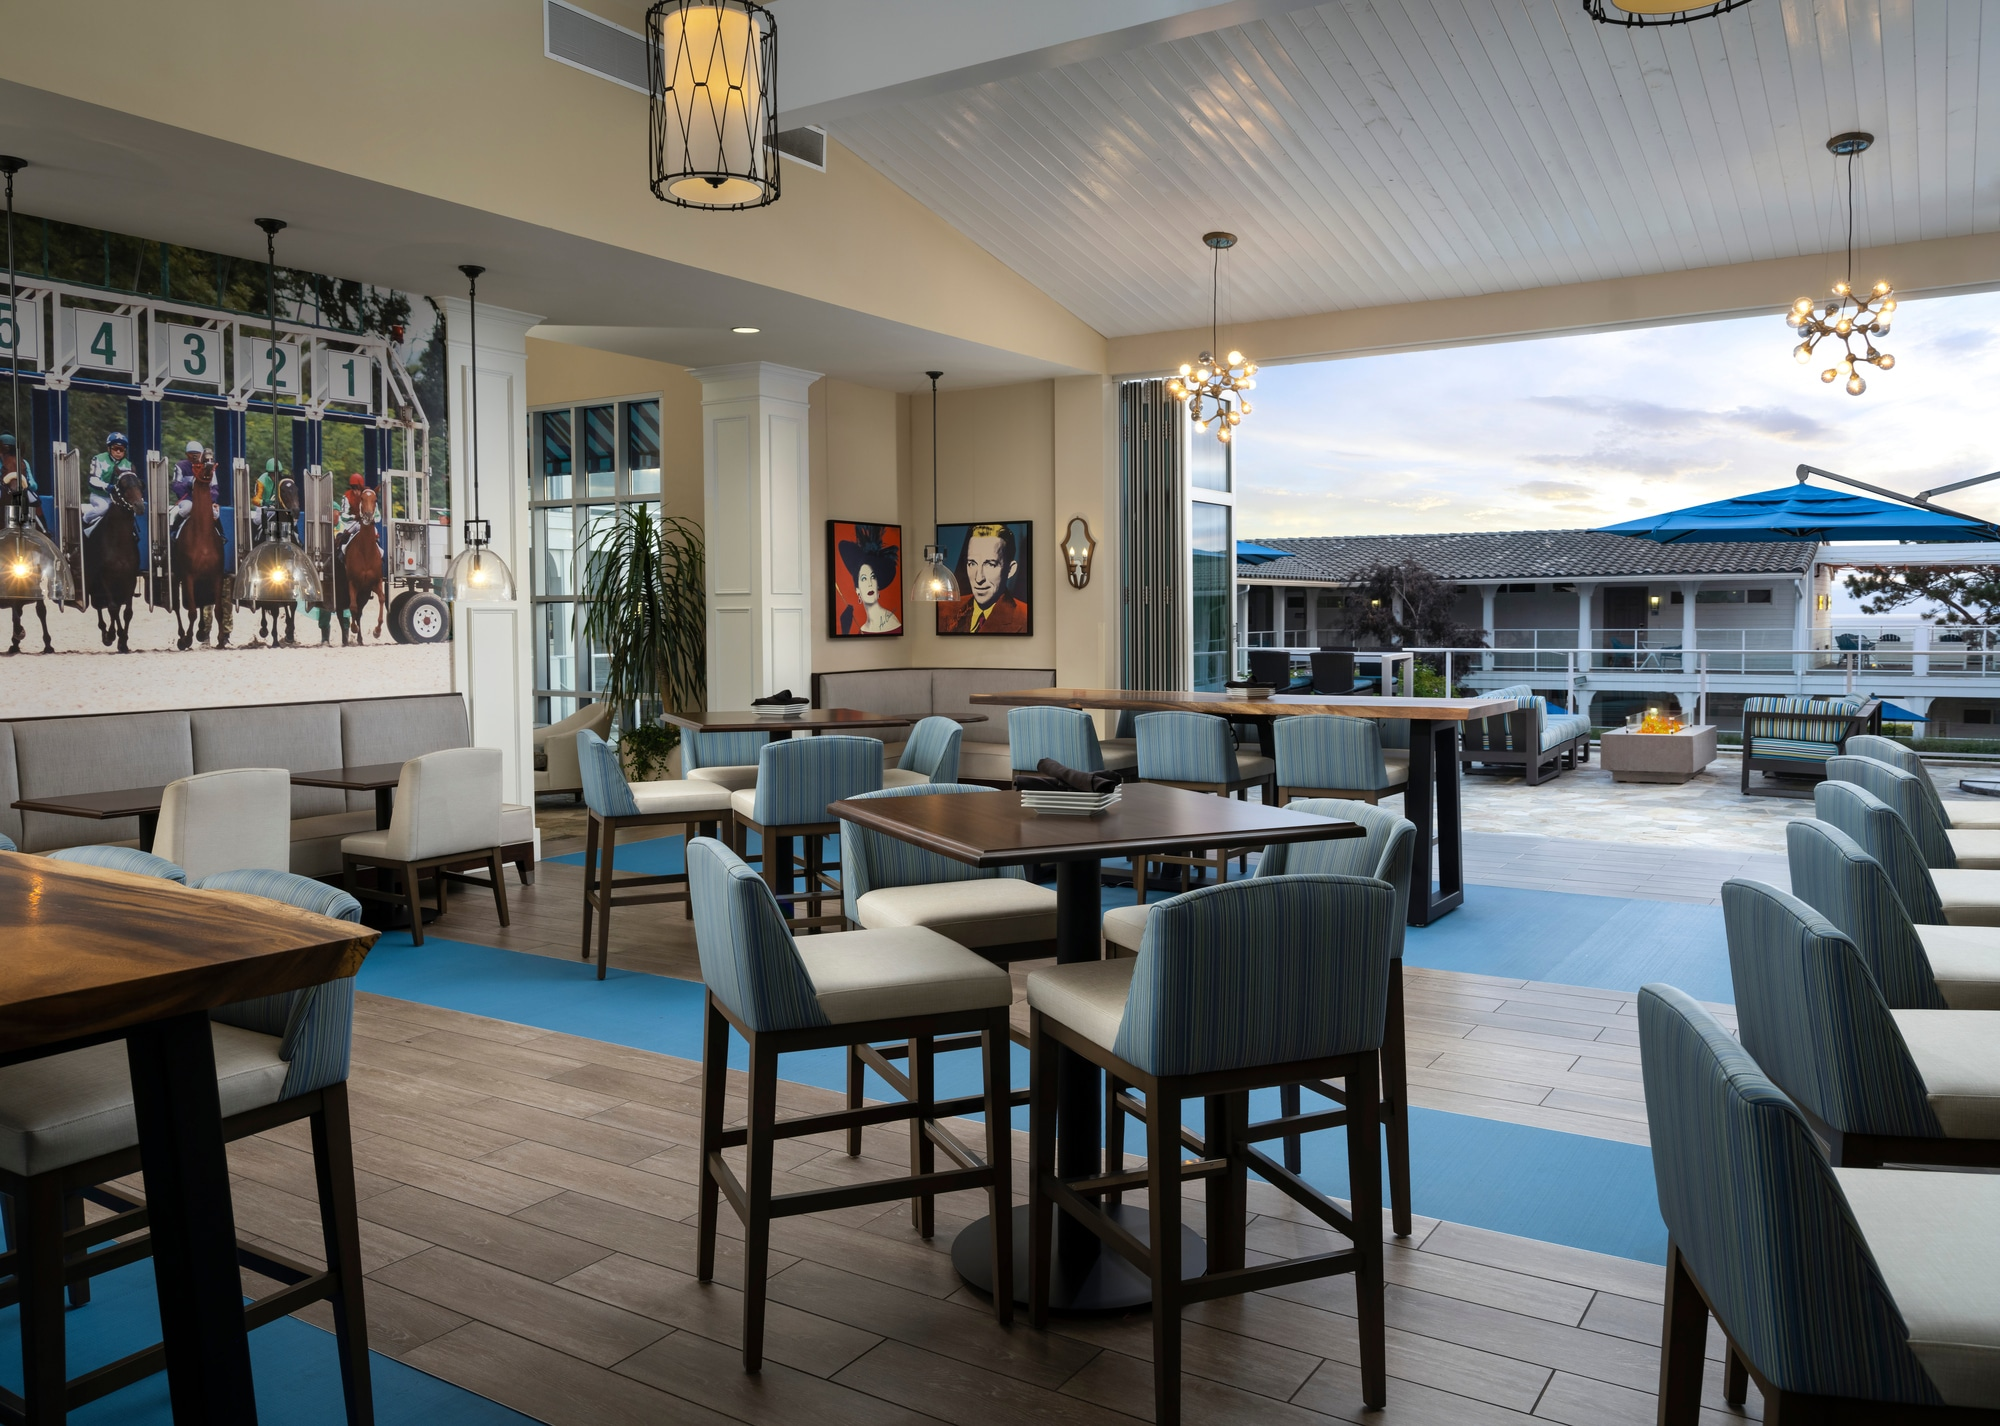 The restaurant indoor-outdoor dining and lounge area.